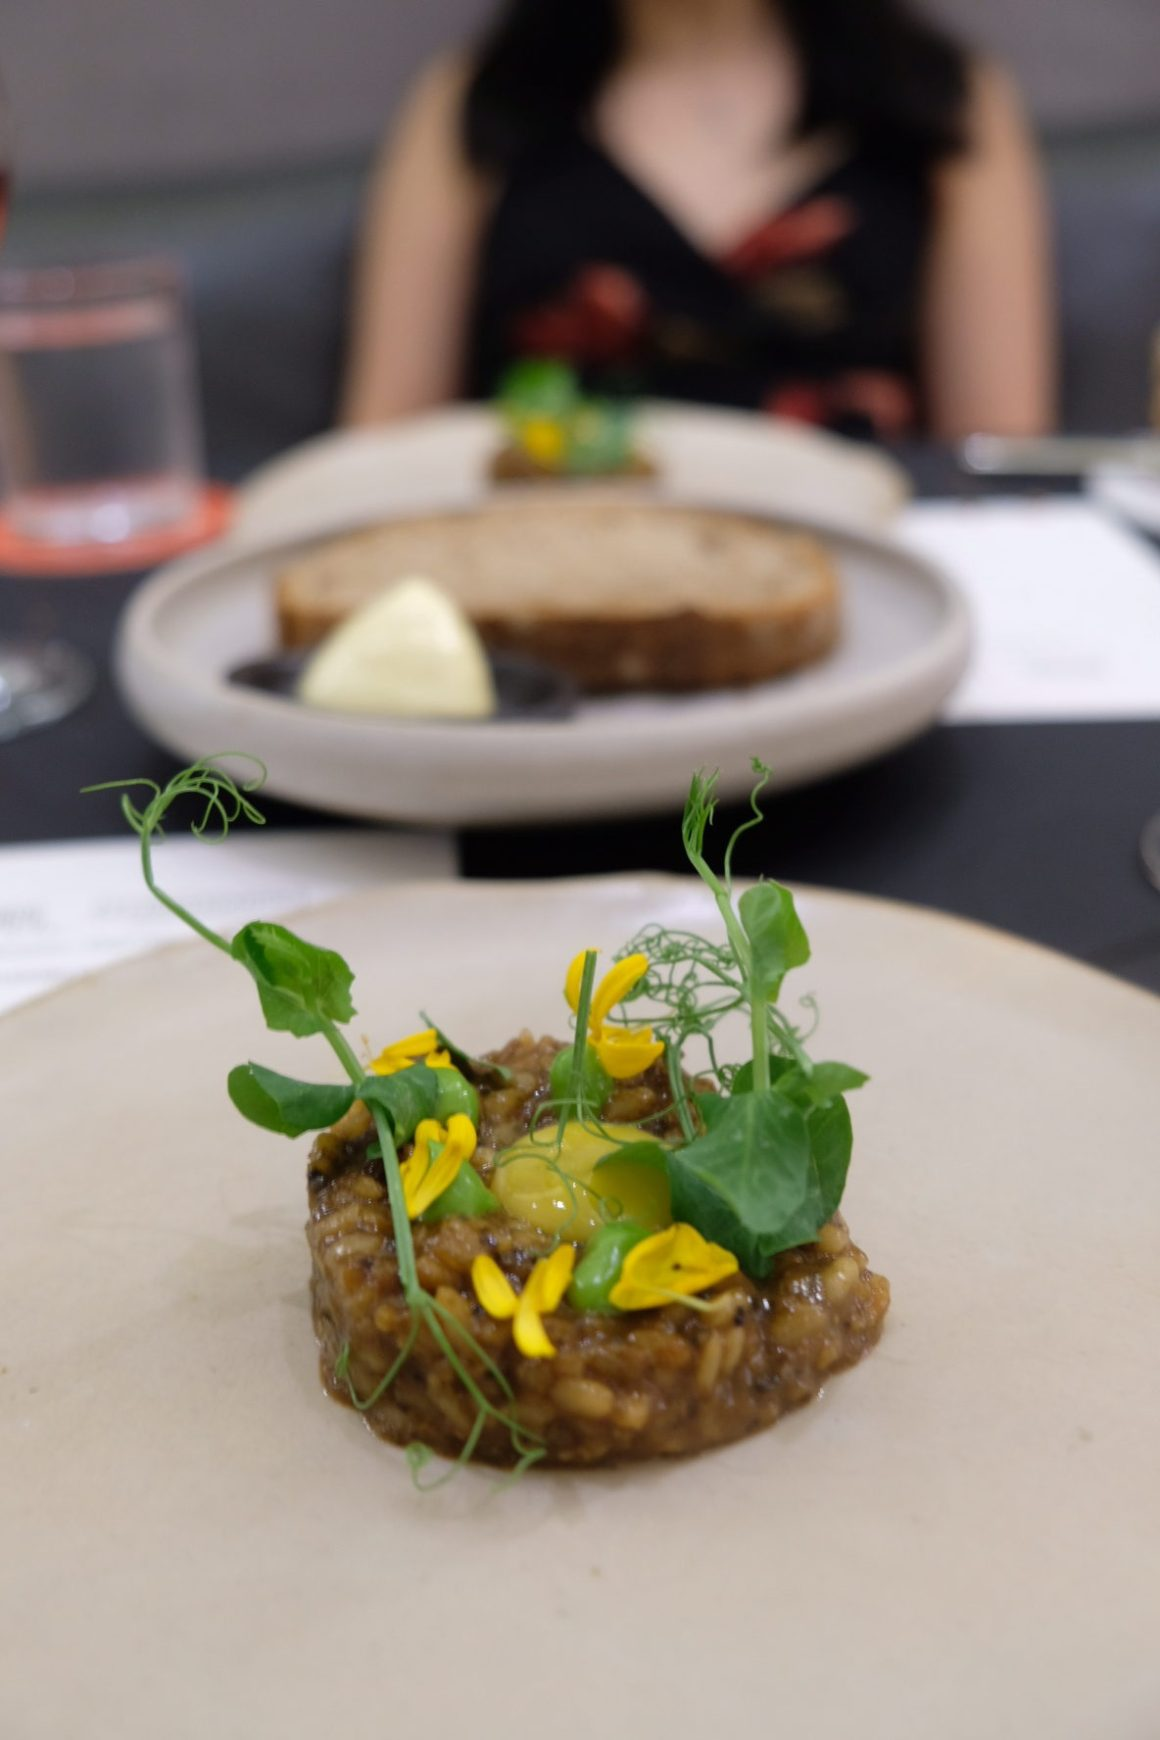 100 Gourment March 2019 Edition: Chef Aitor Jeronimo Orive x Visiting Chef Oldrich Sahajdak At Basque Kitchen By Aitor - Oxtail Bomba Rice